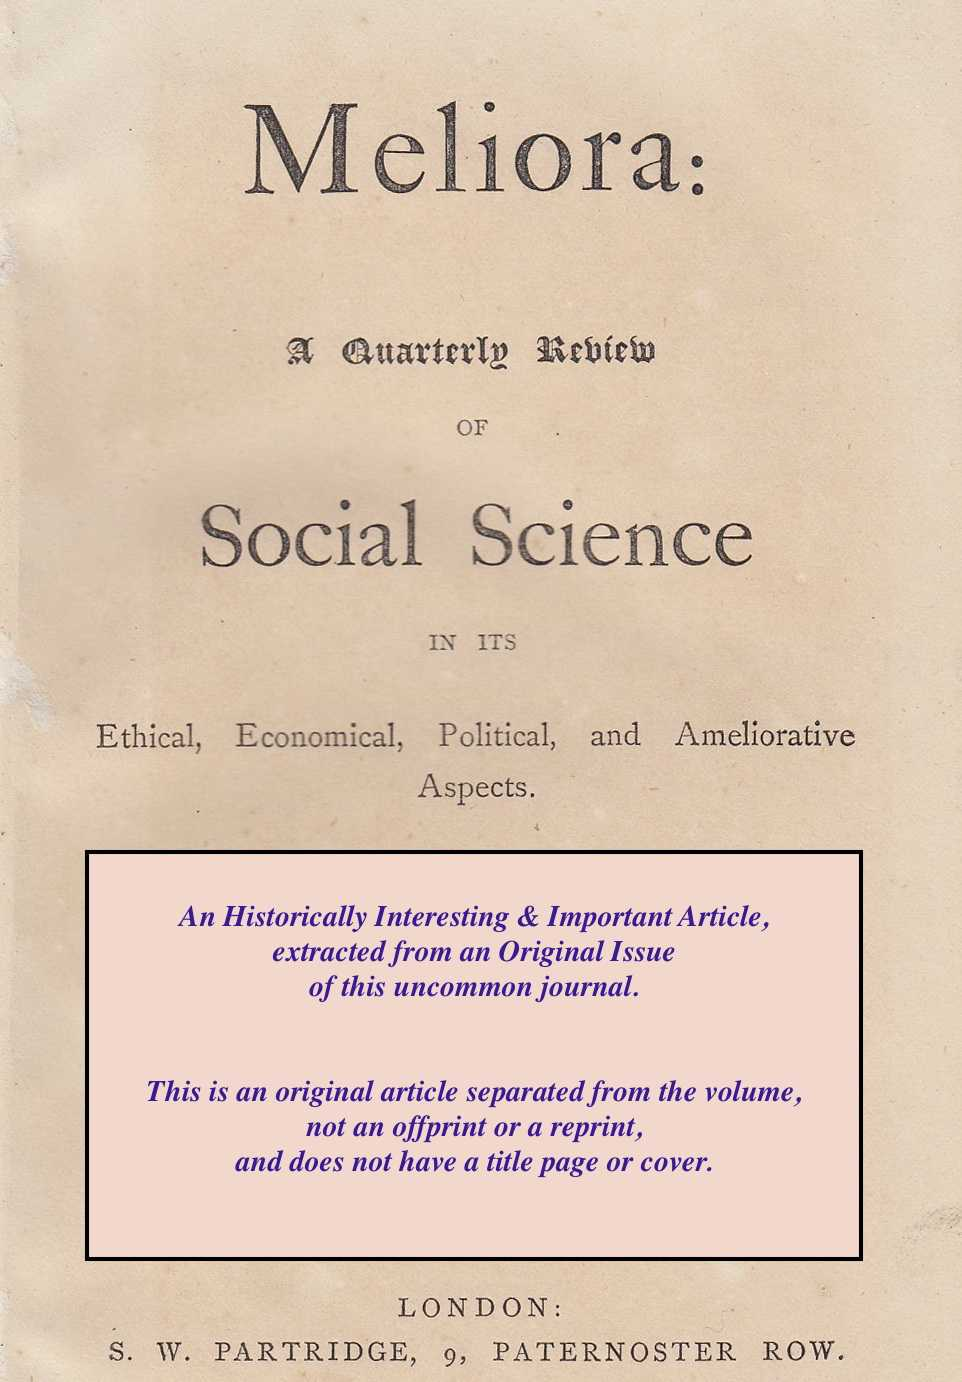 --- - The Sale of Drugs and Poisons. Special Report from the Select Committee on the Chemists and Druggists Bill. A rare original article from Meliora: A Quarterly Review of Social Science, 1865.